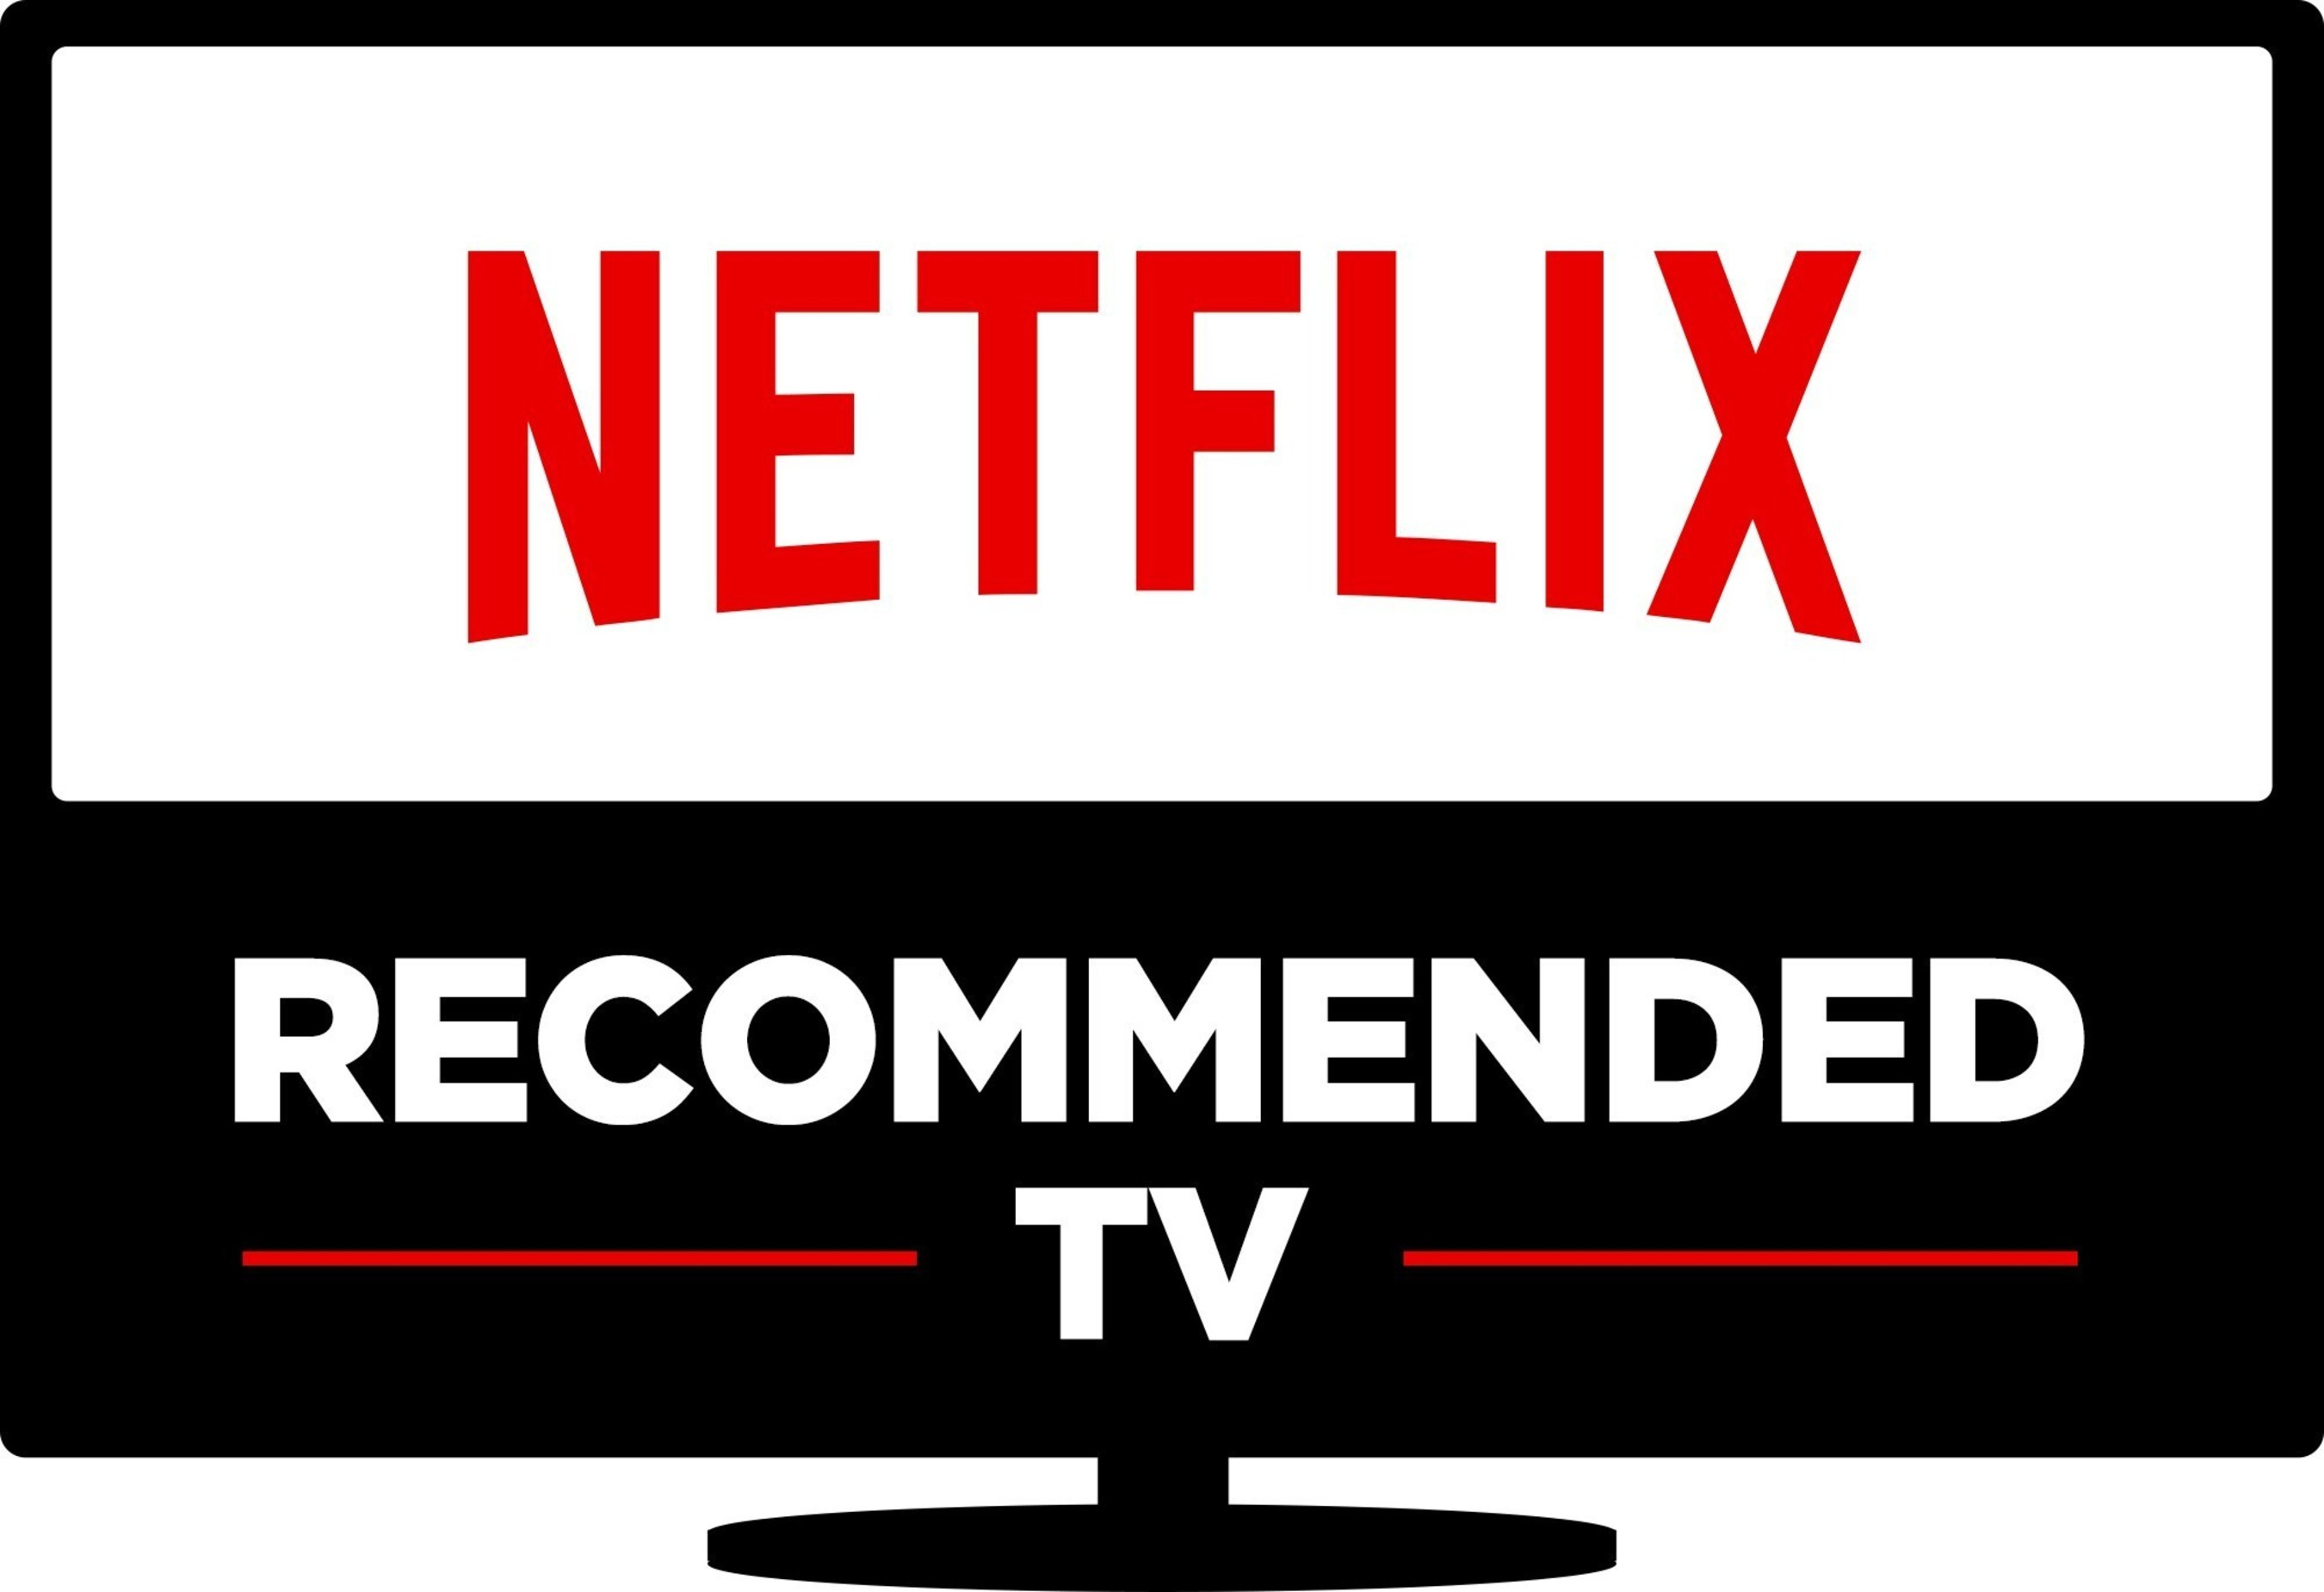 Netflix Announces 'Netflix Recommended TV' Program